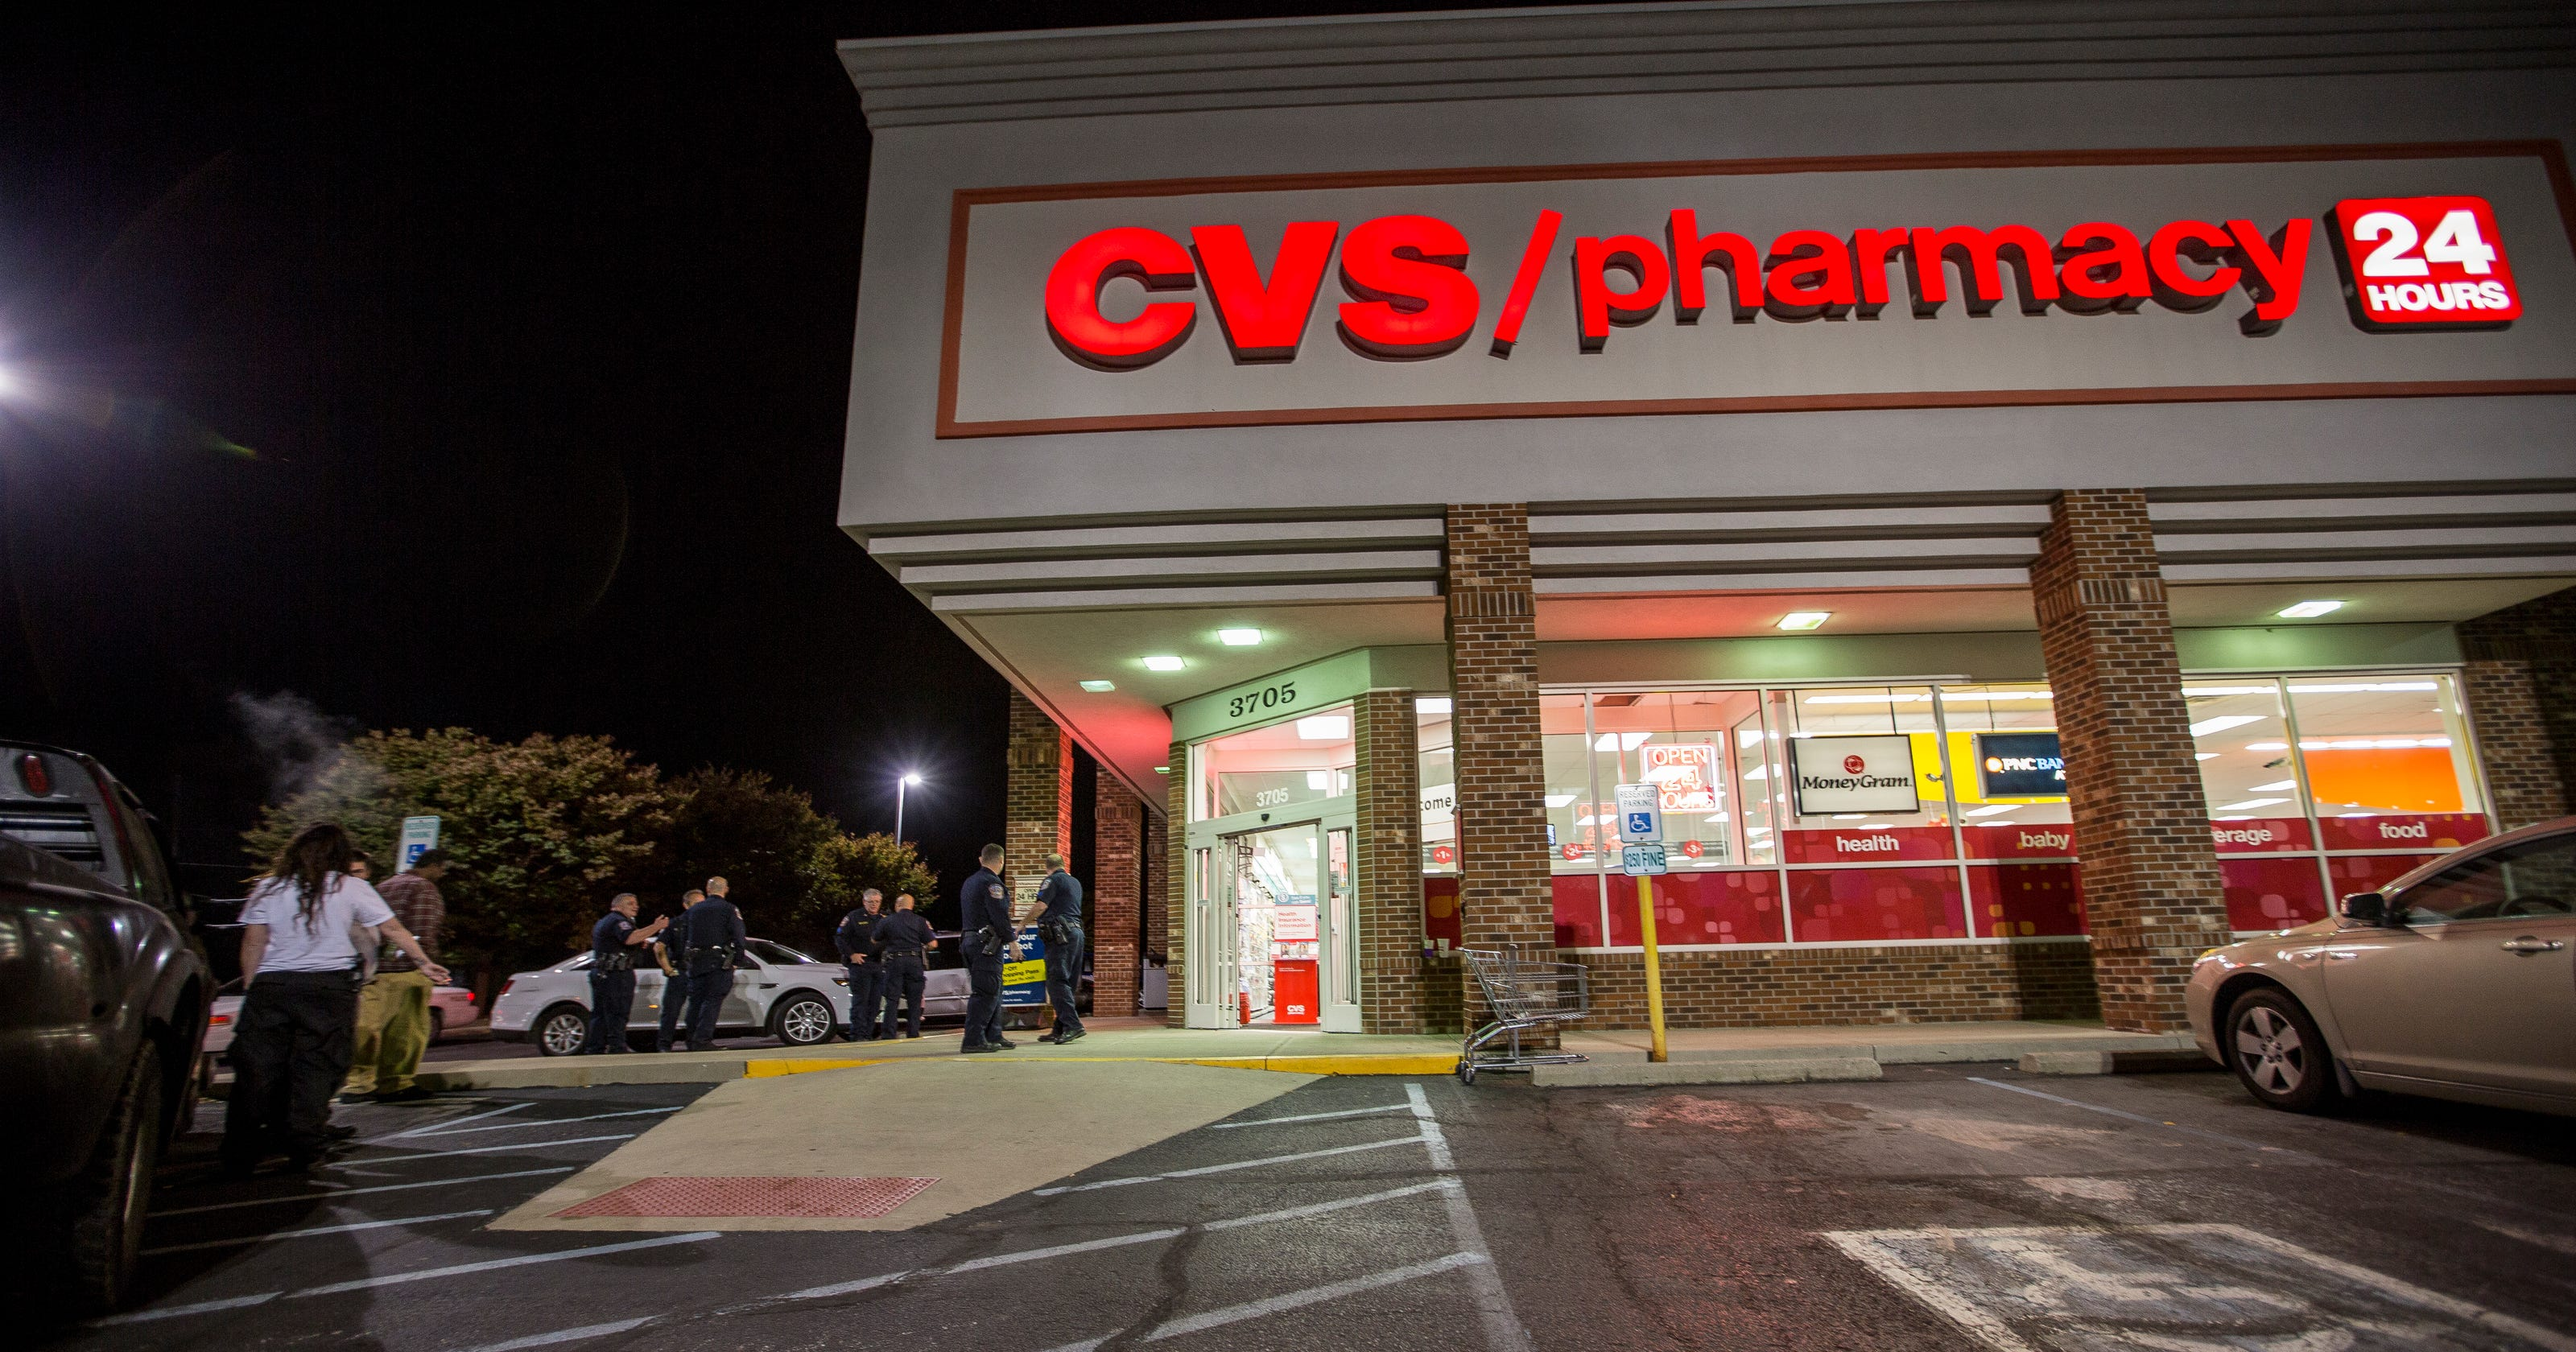 4 robbery suspects arrested at kentucky ave cvs